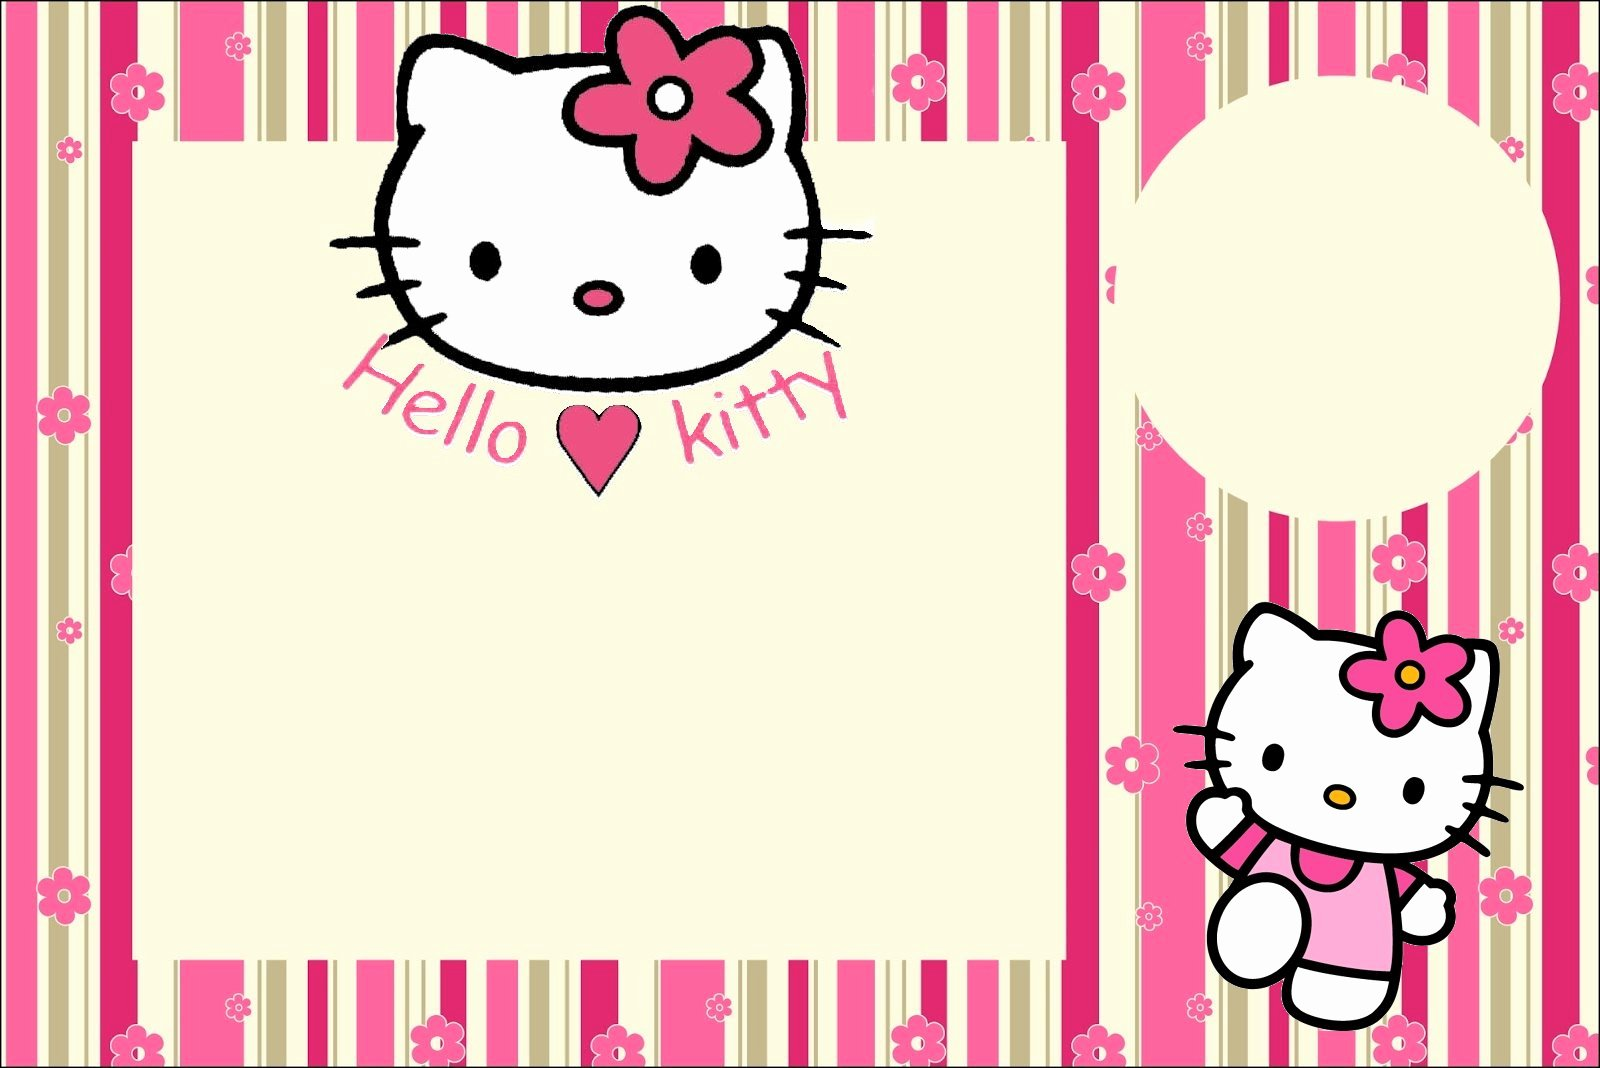 Hello Kitty Invitation Templates New Hello Kitty with Flowers Free Printable Invitations Oh